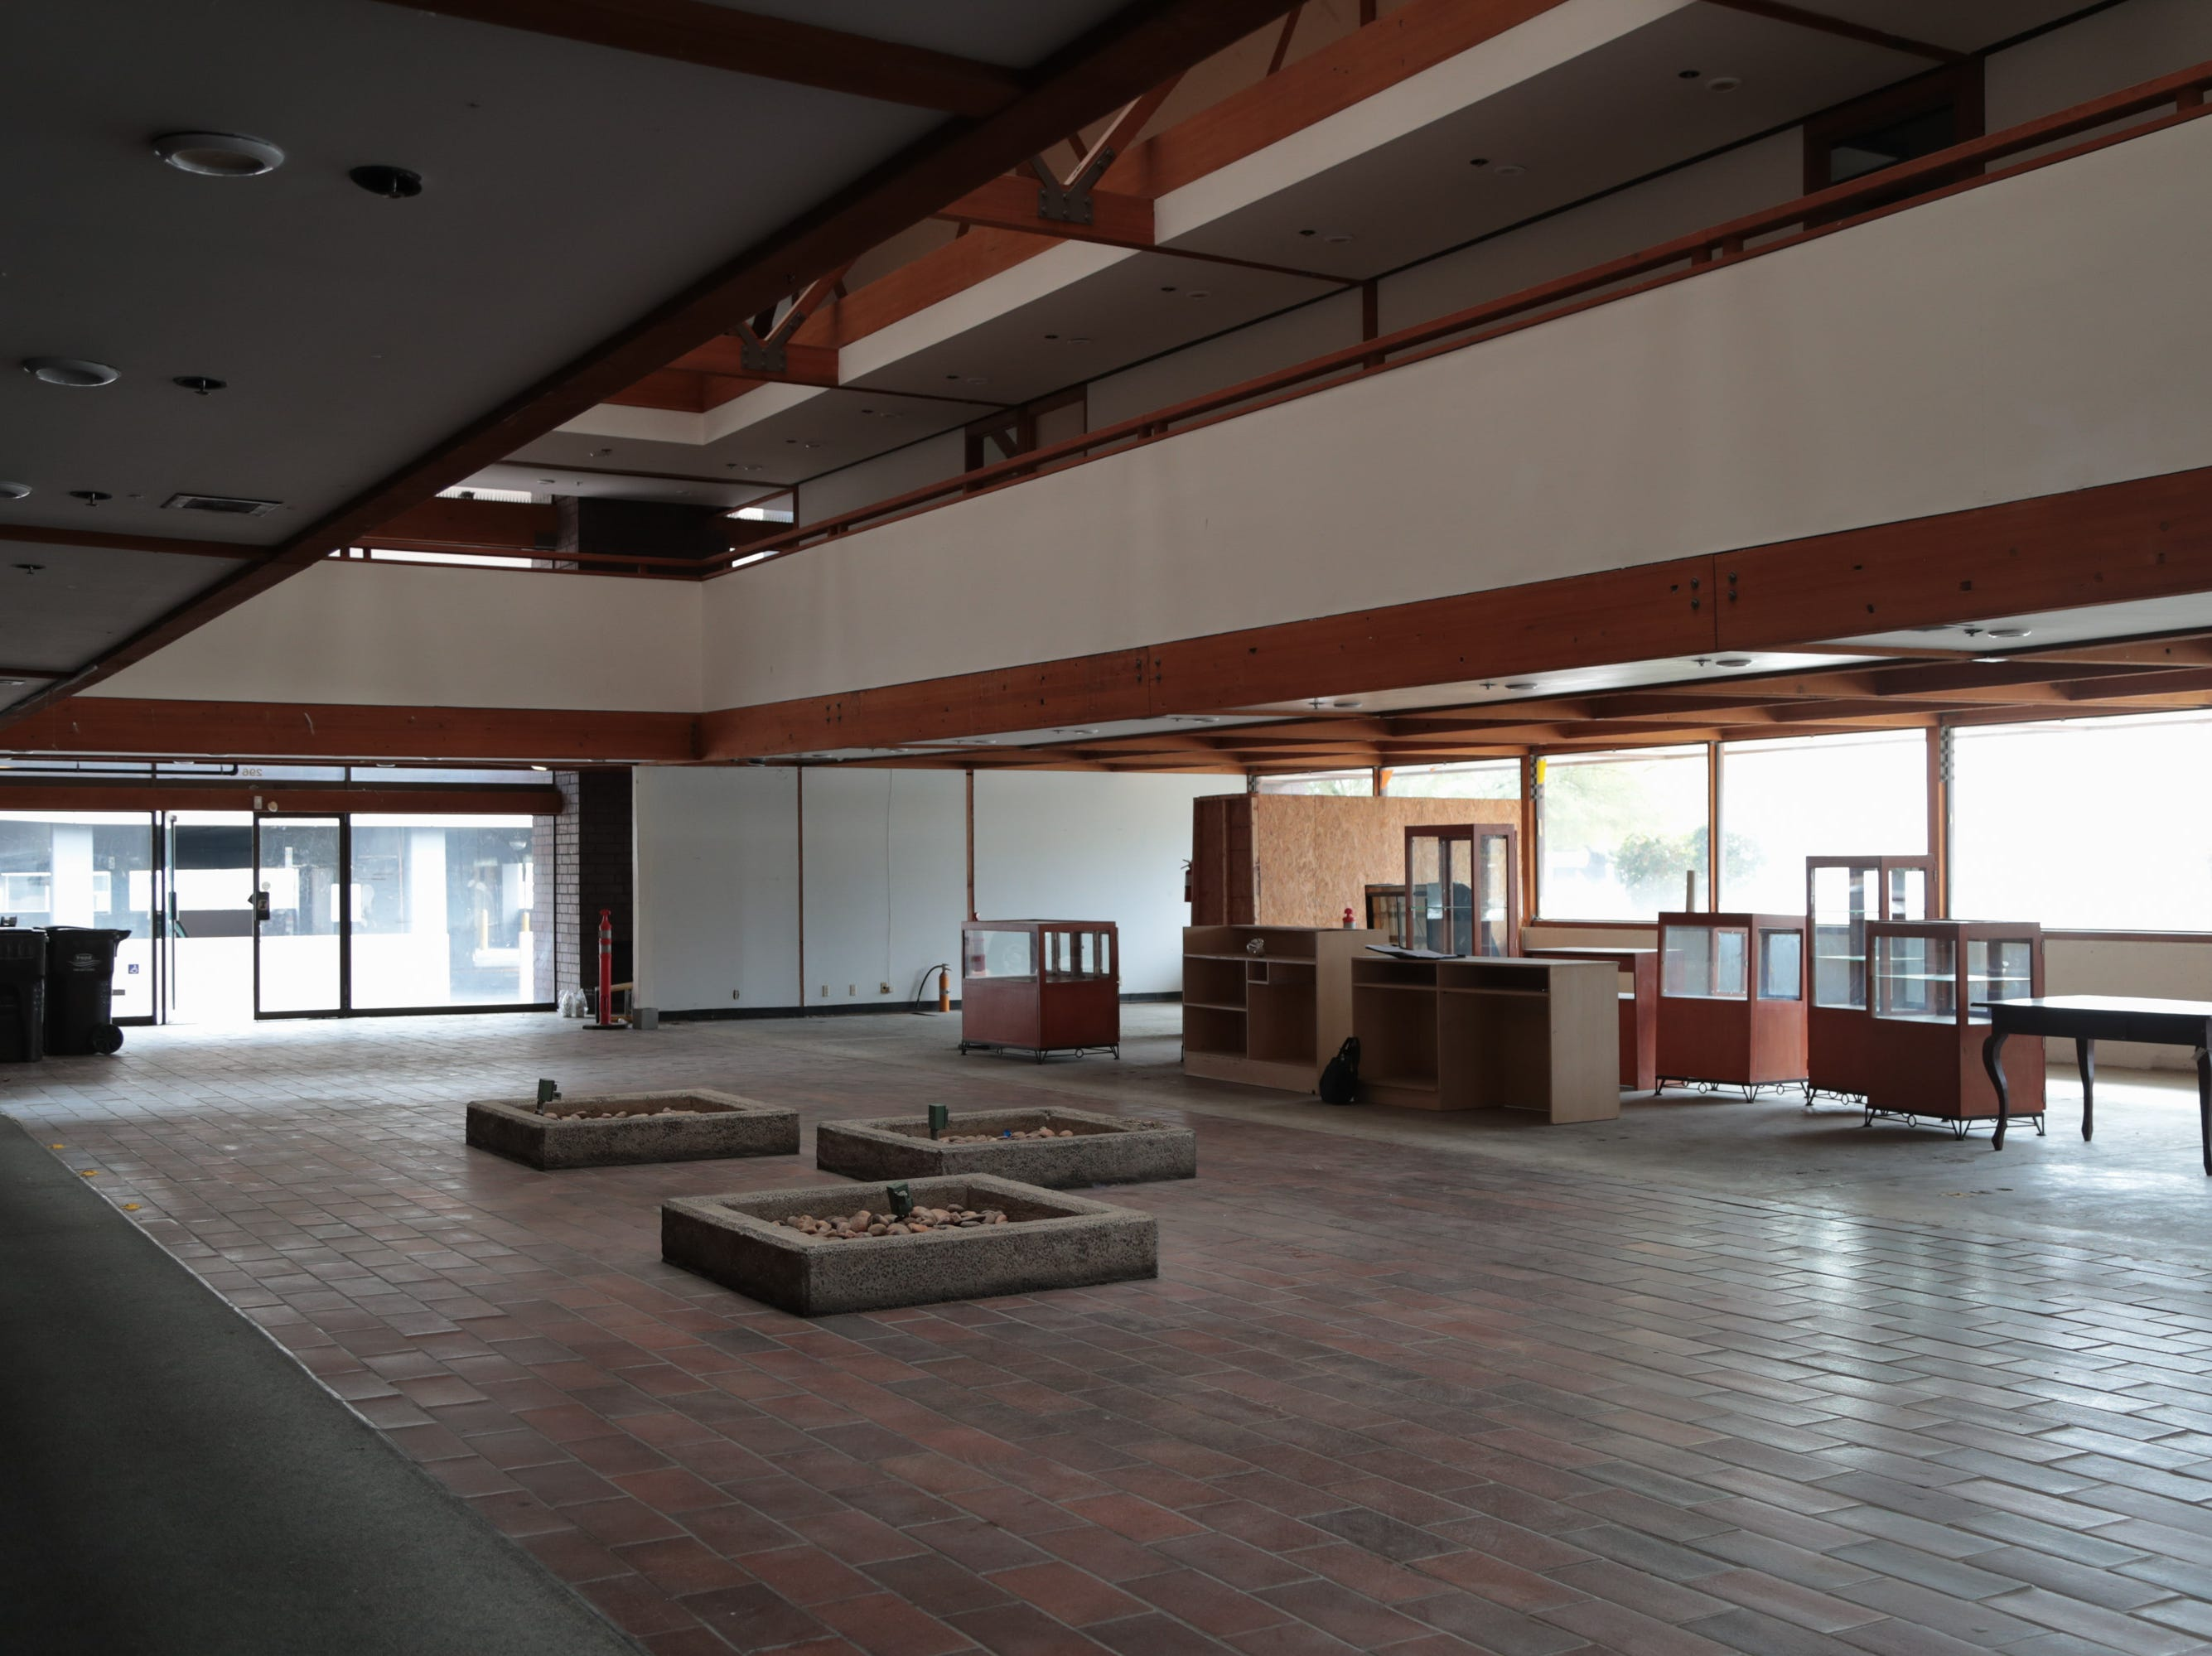 A cannabis lounge will be moving into a former bank building in downtown Palm Springs, Calif., January 16, 2018.